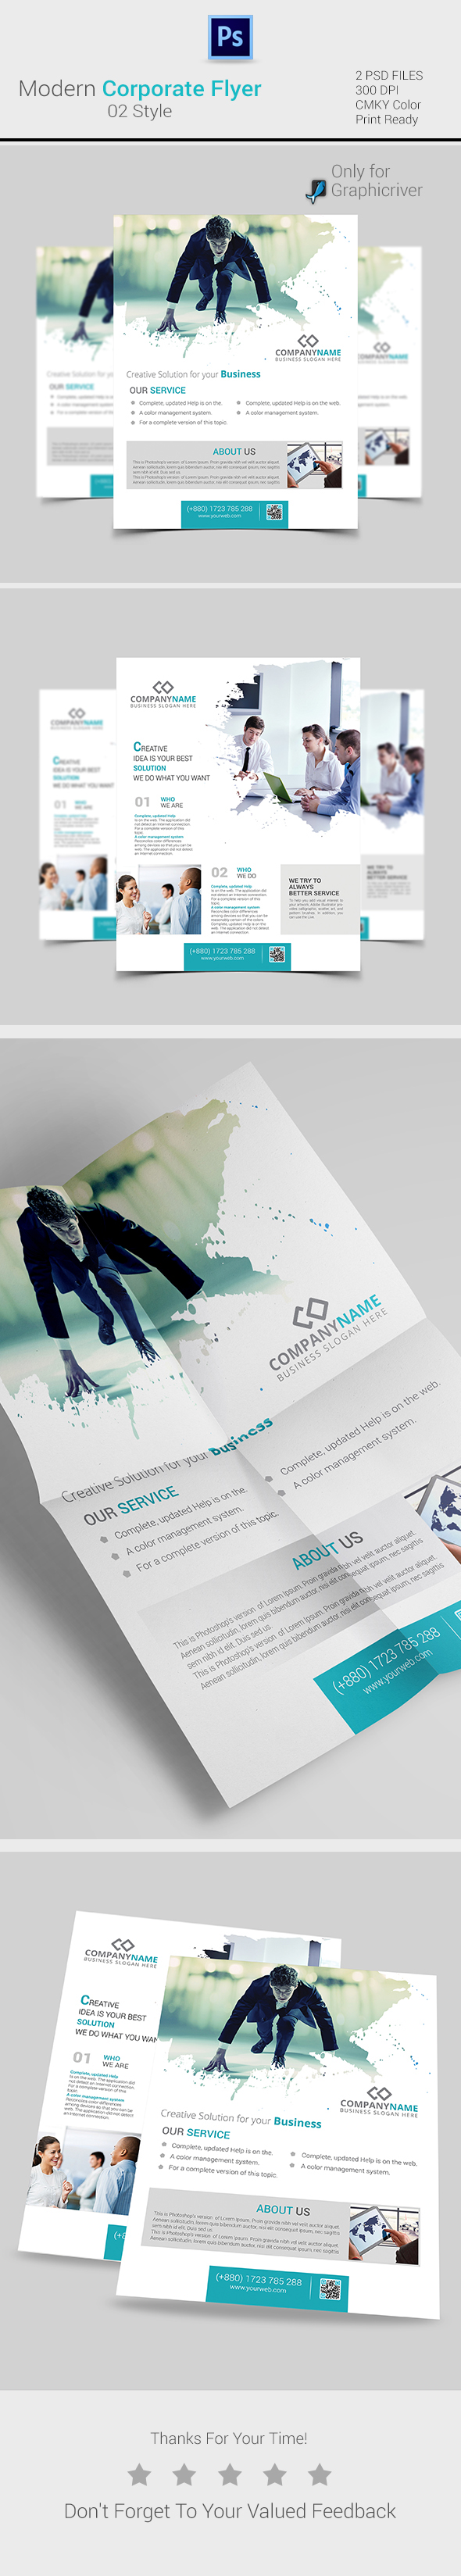 modern corporate flyer templates on behance